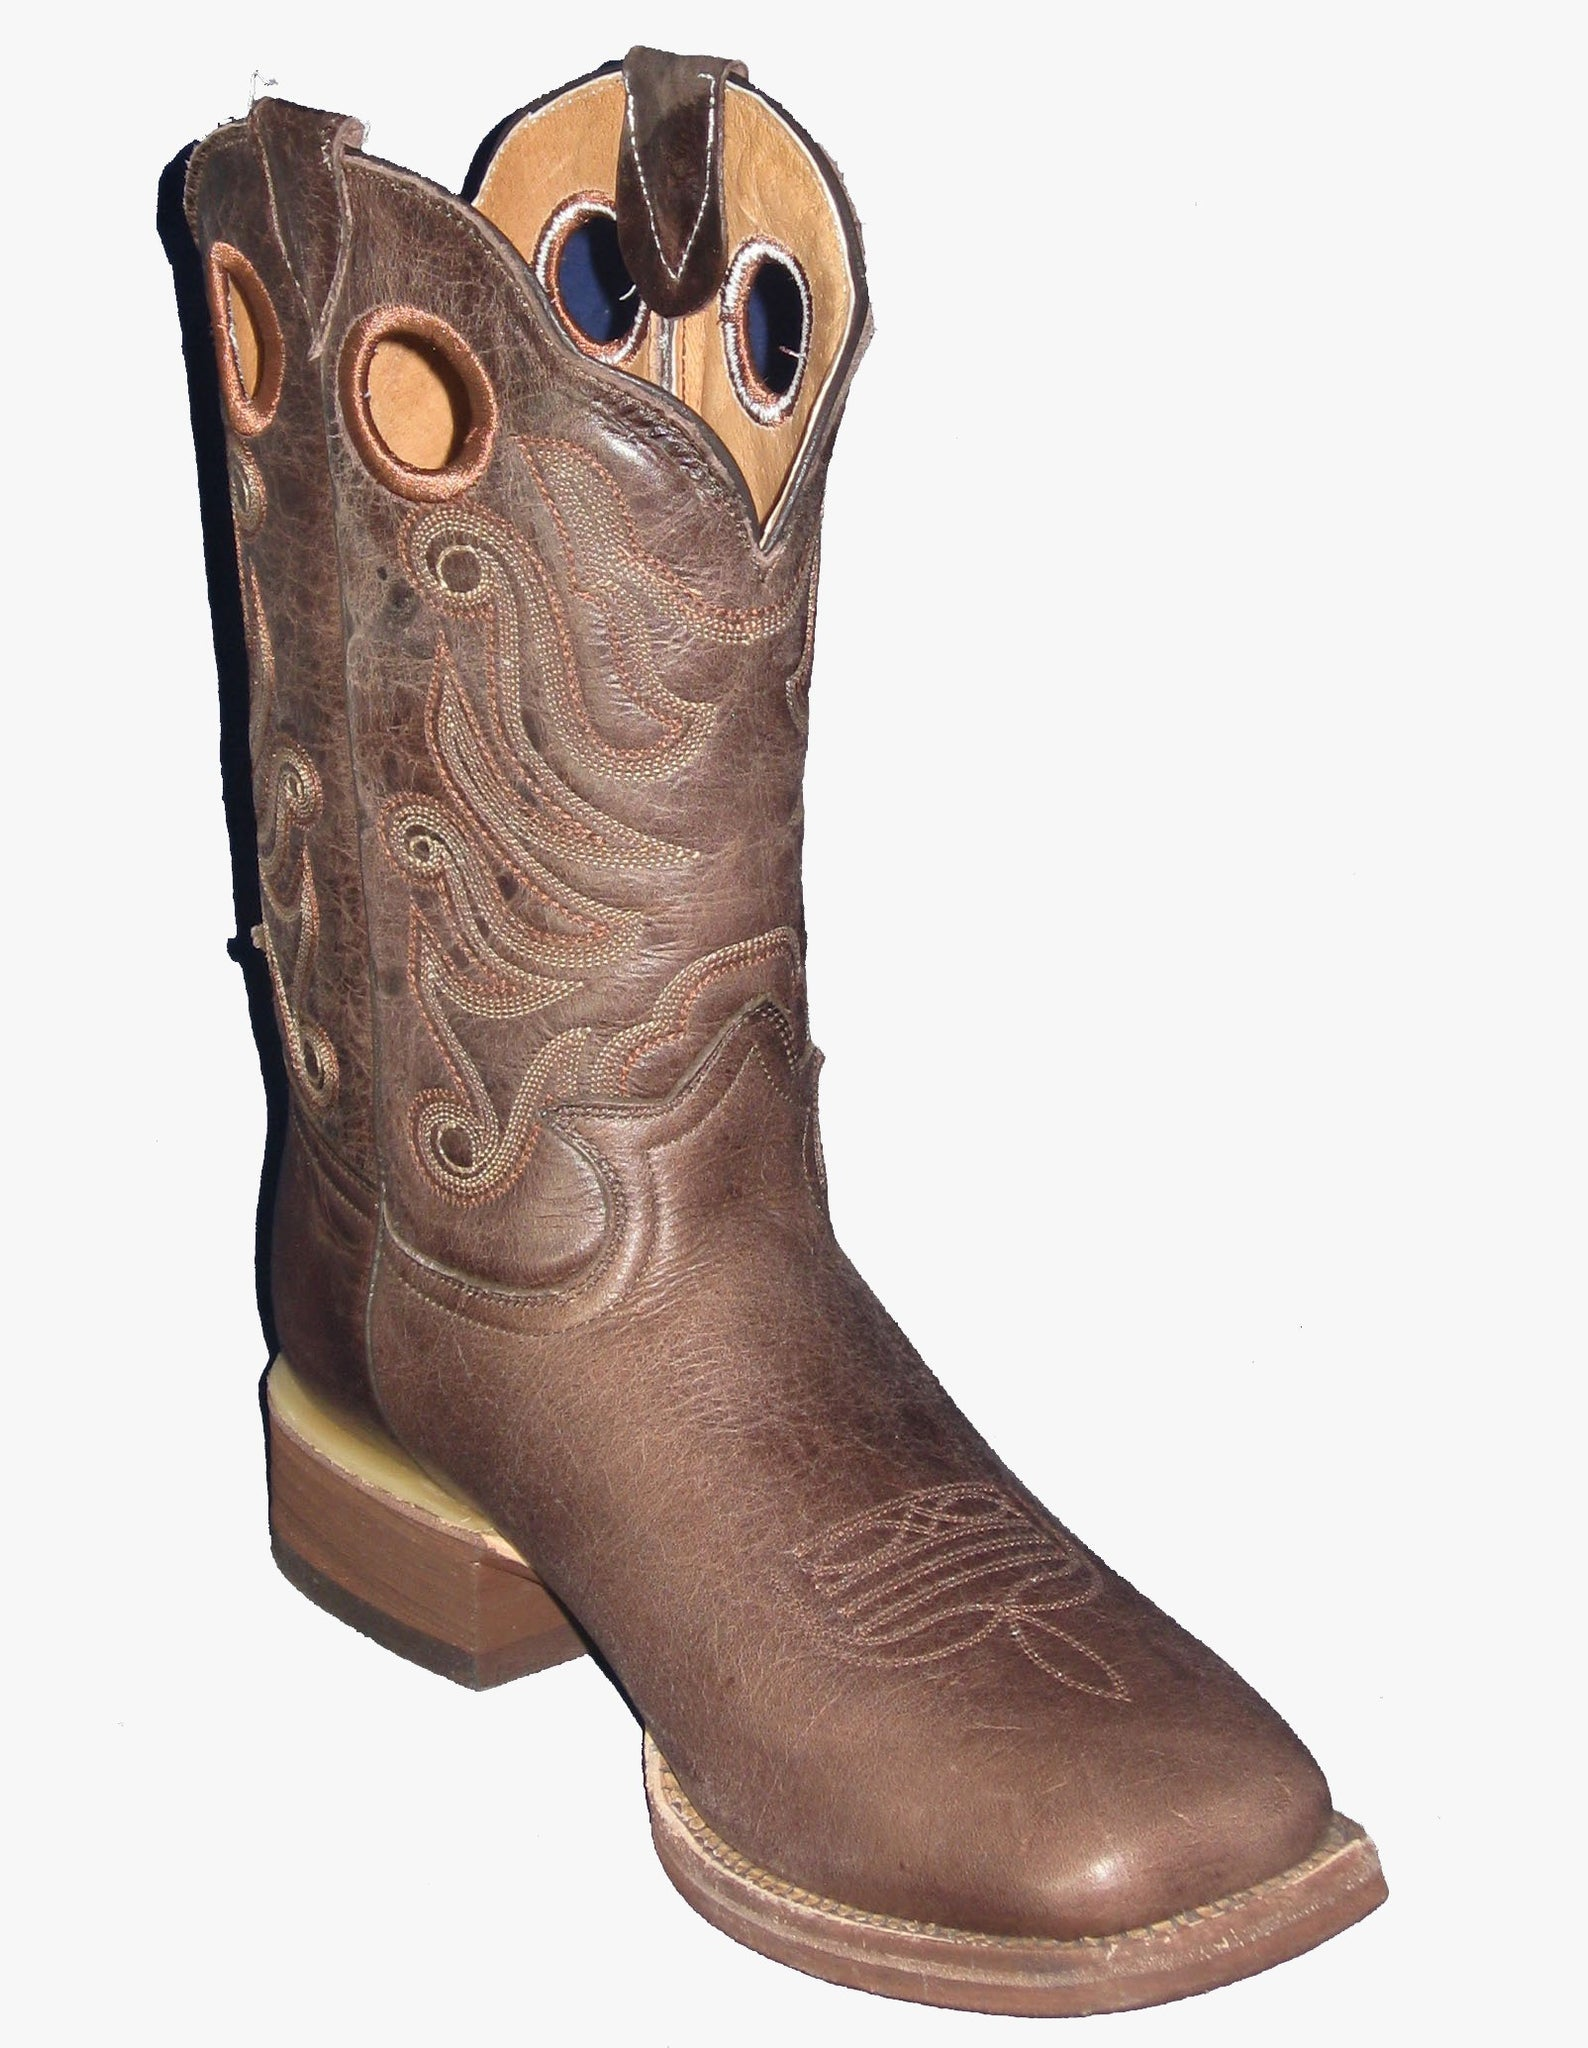 Boots - WESTERN SQUARE TOE 309Q - Cowtown - Mock Brothers Saddlery and Western Wear